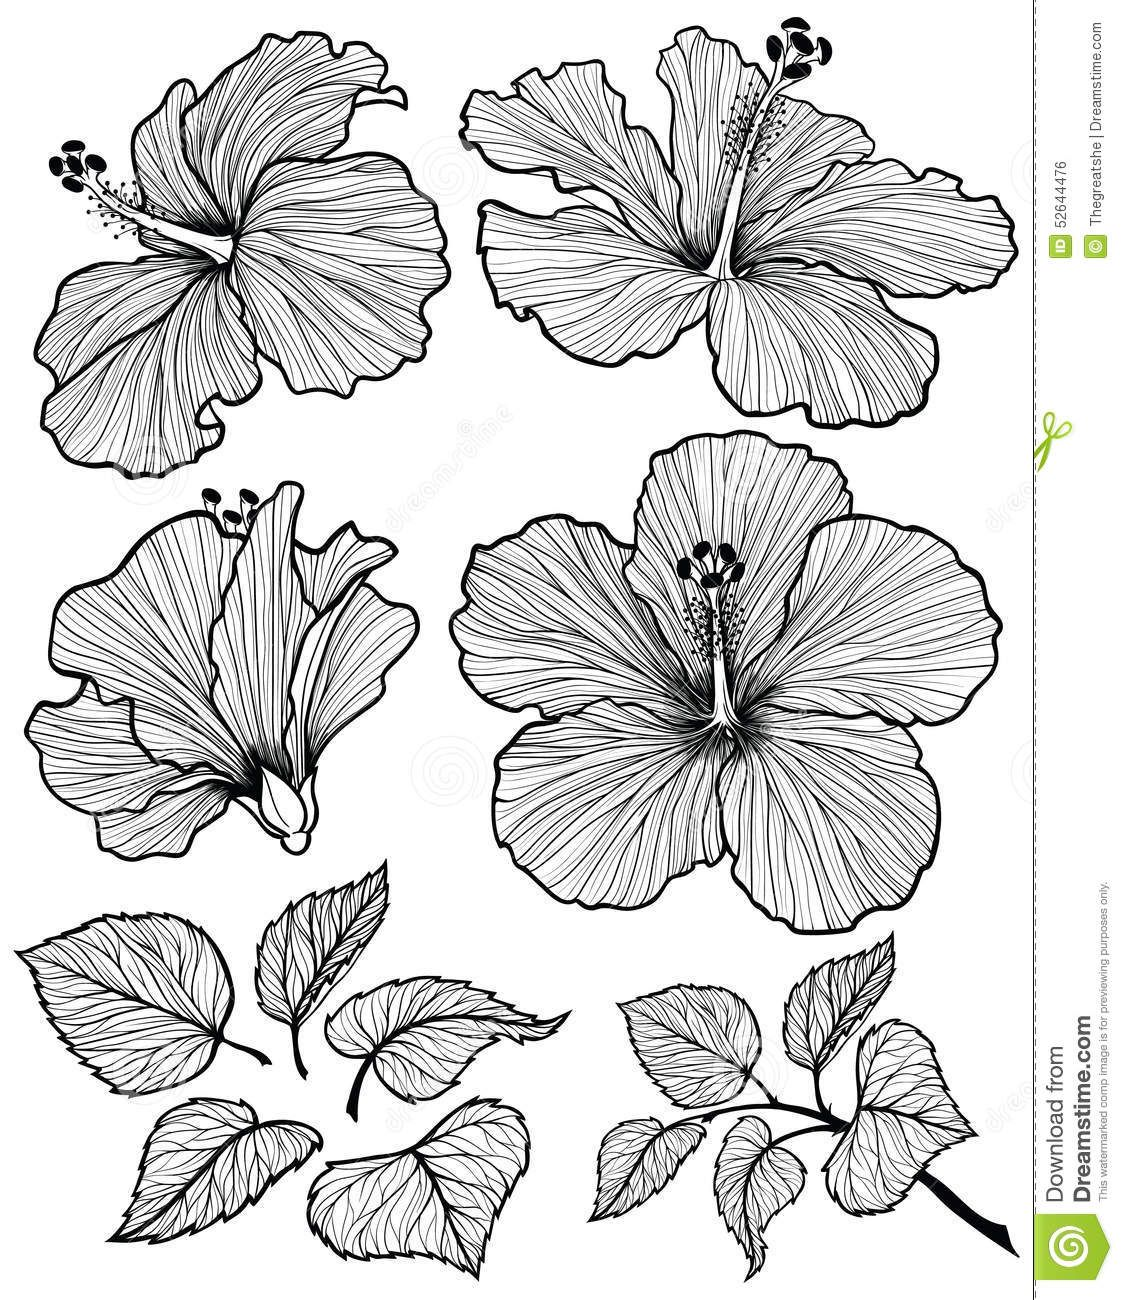 Flower Leaf Line Drawing : Hibiscus flower graphic head set with leaves and branch